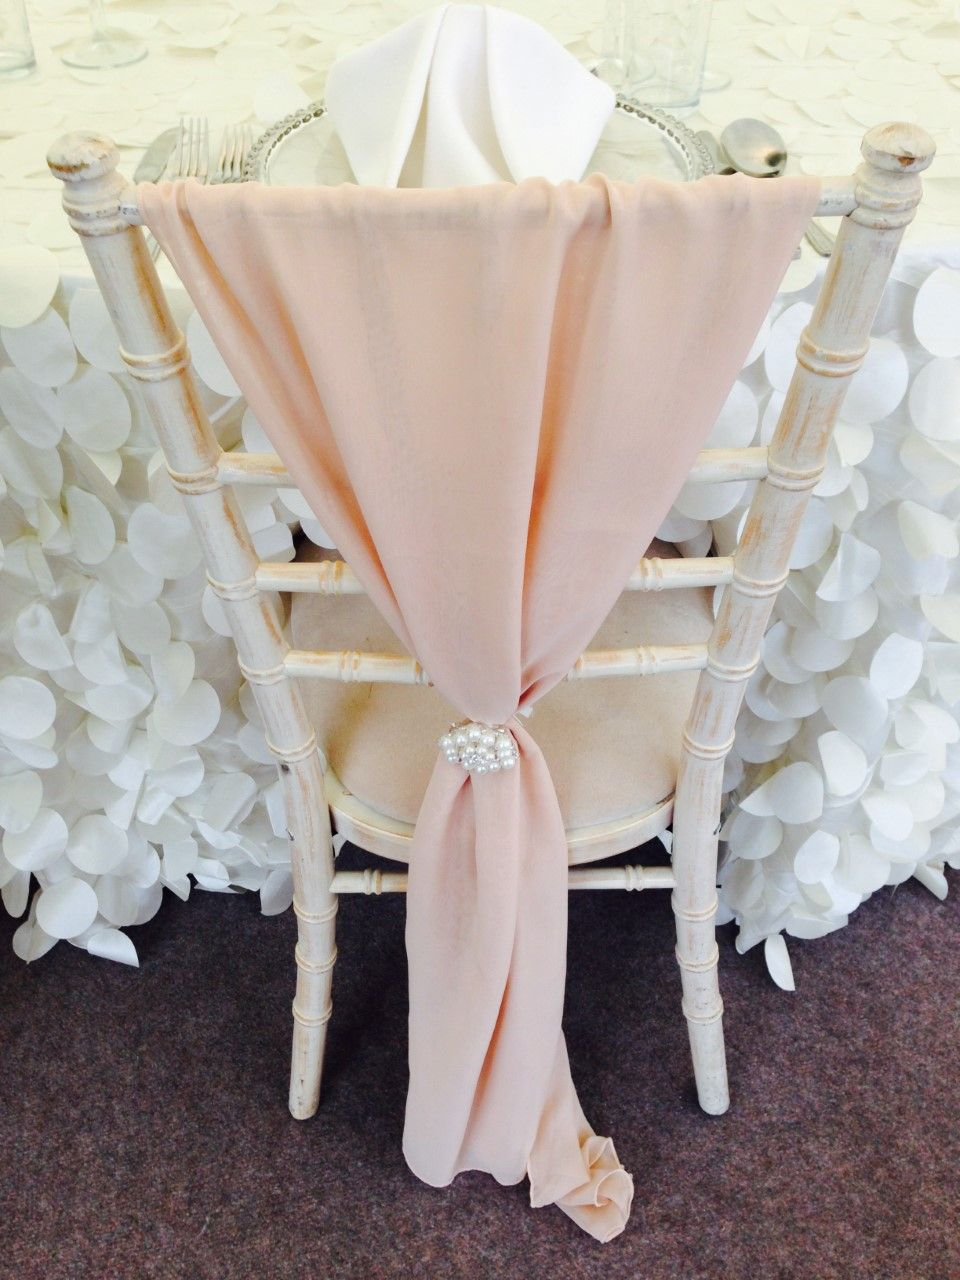 Pin by Kim Flory on Wedding ideas Luxury chair covers